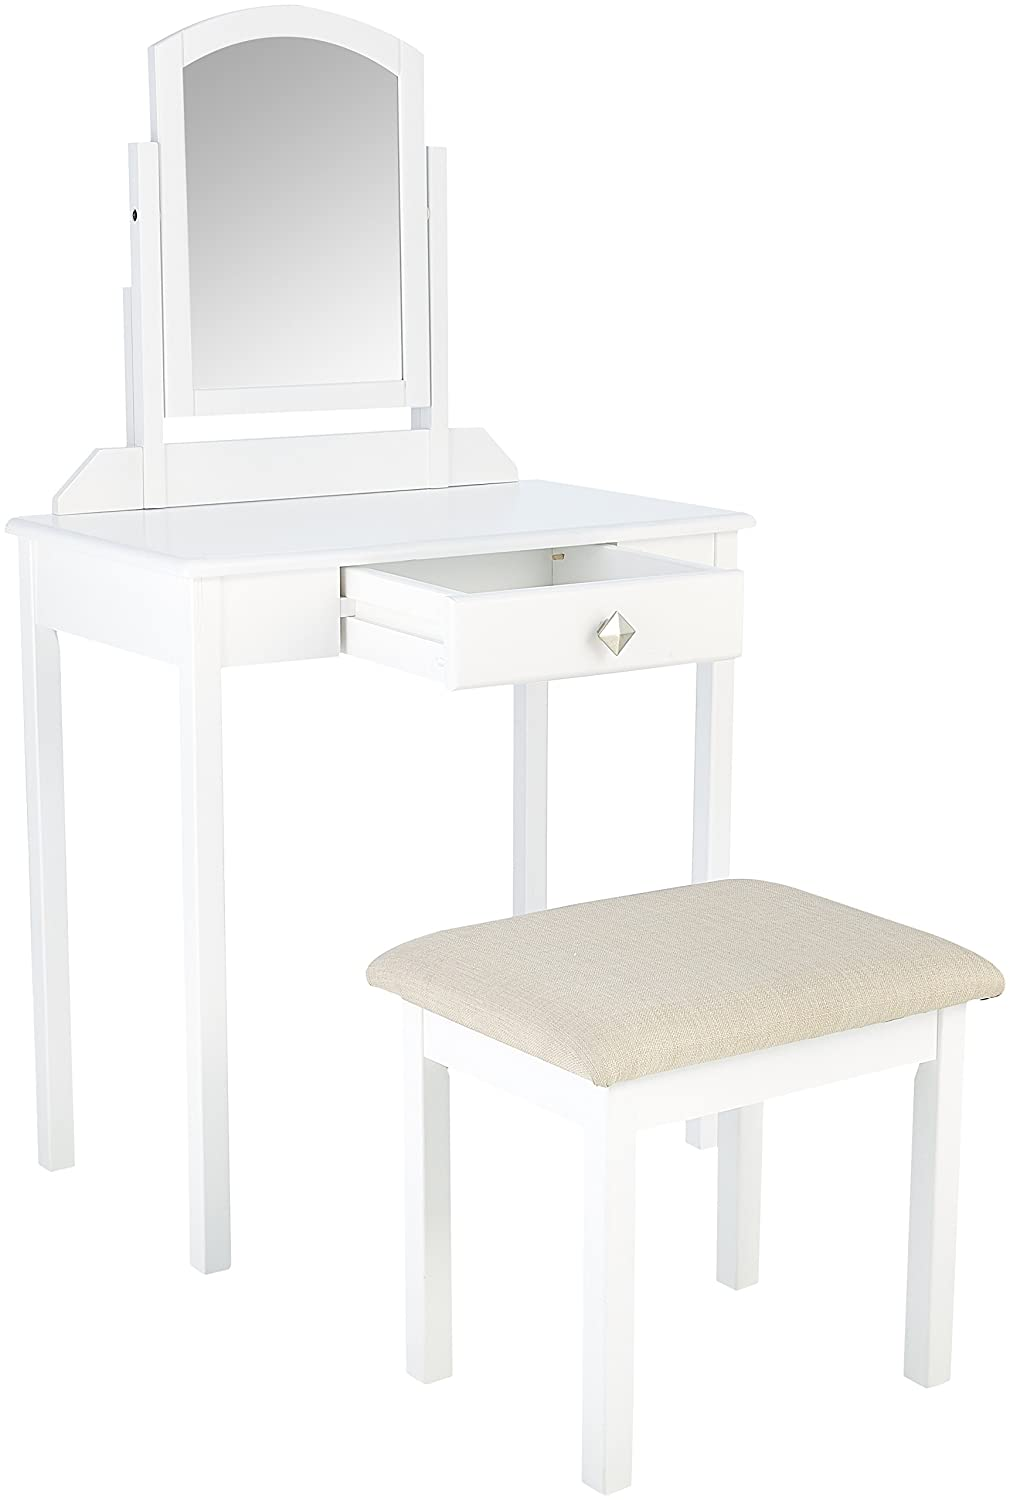 AmazonBasics Classic Compact Vanity Table Set with Stool and Mirror – White